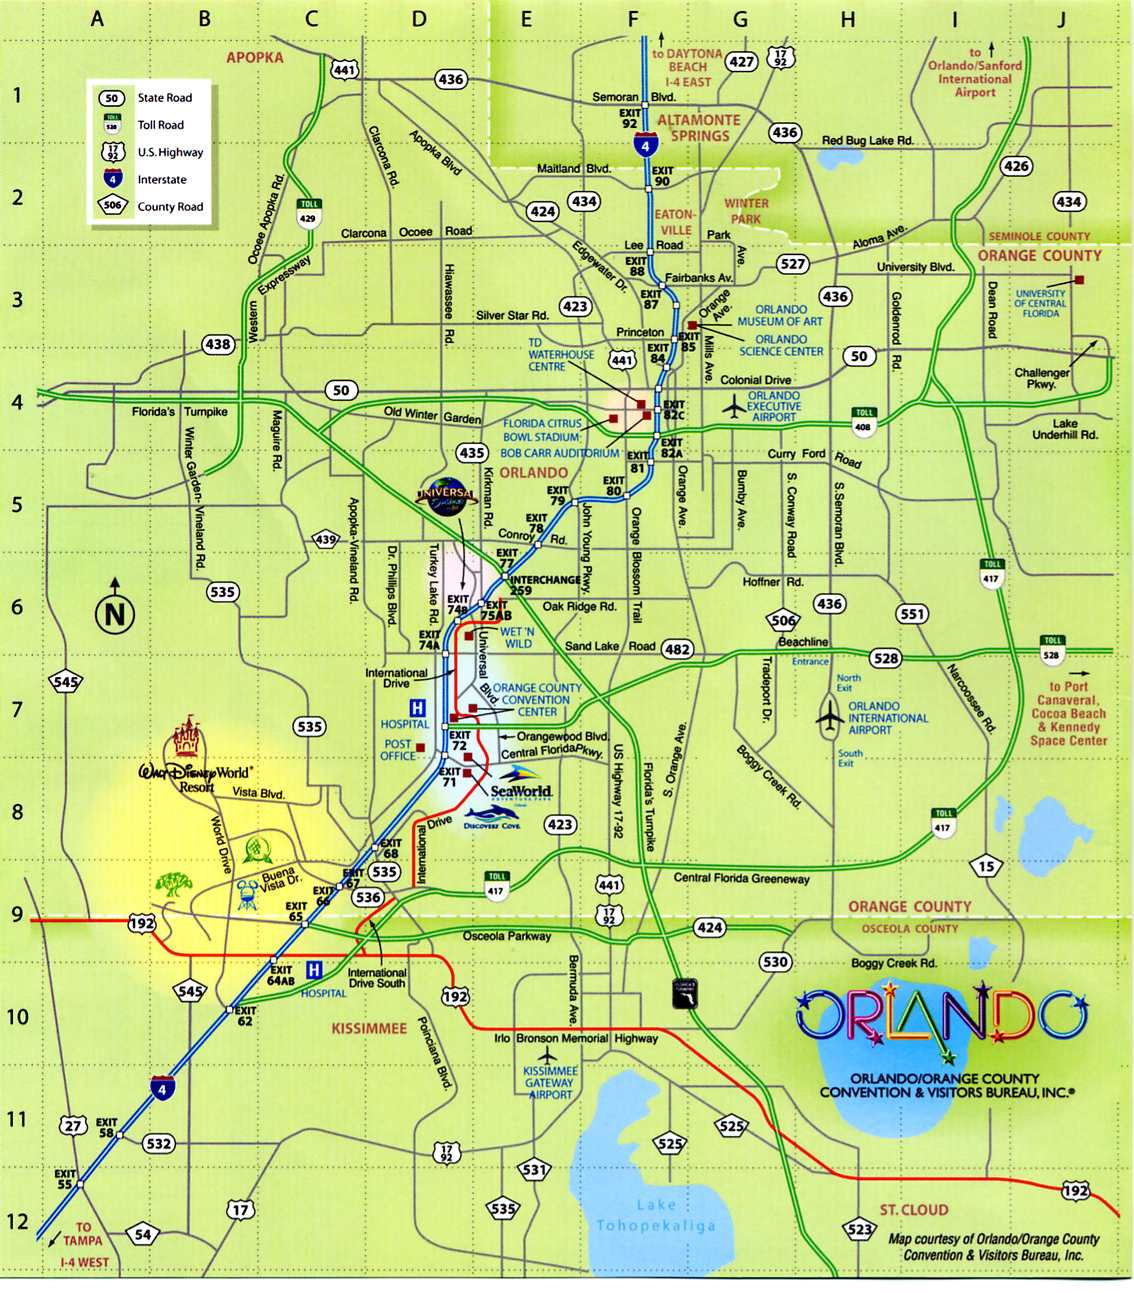 Maps Update 7001125 Orlando Florida Tourist Attractions Map 10